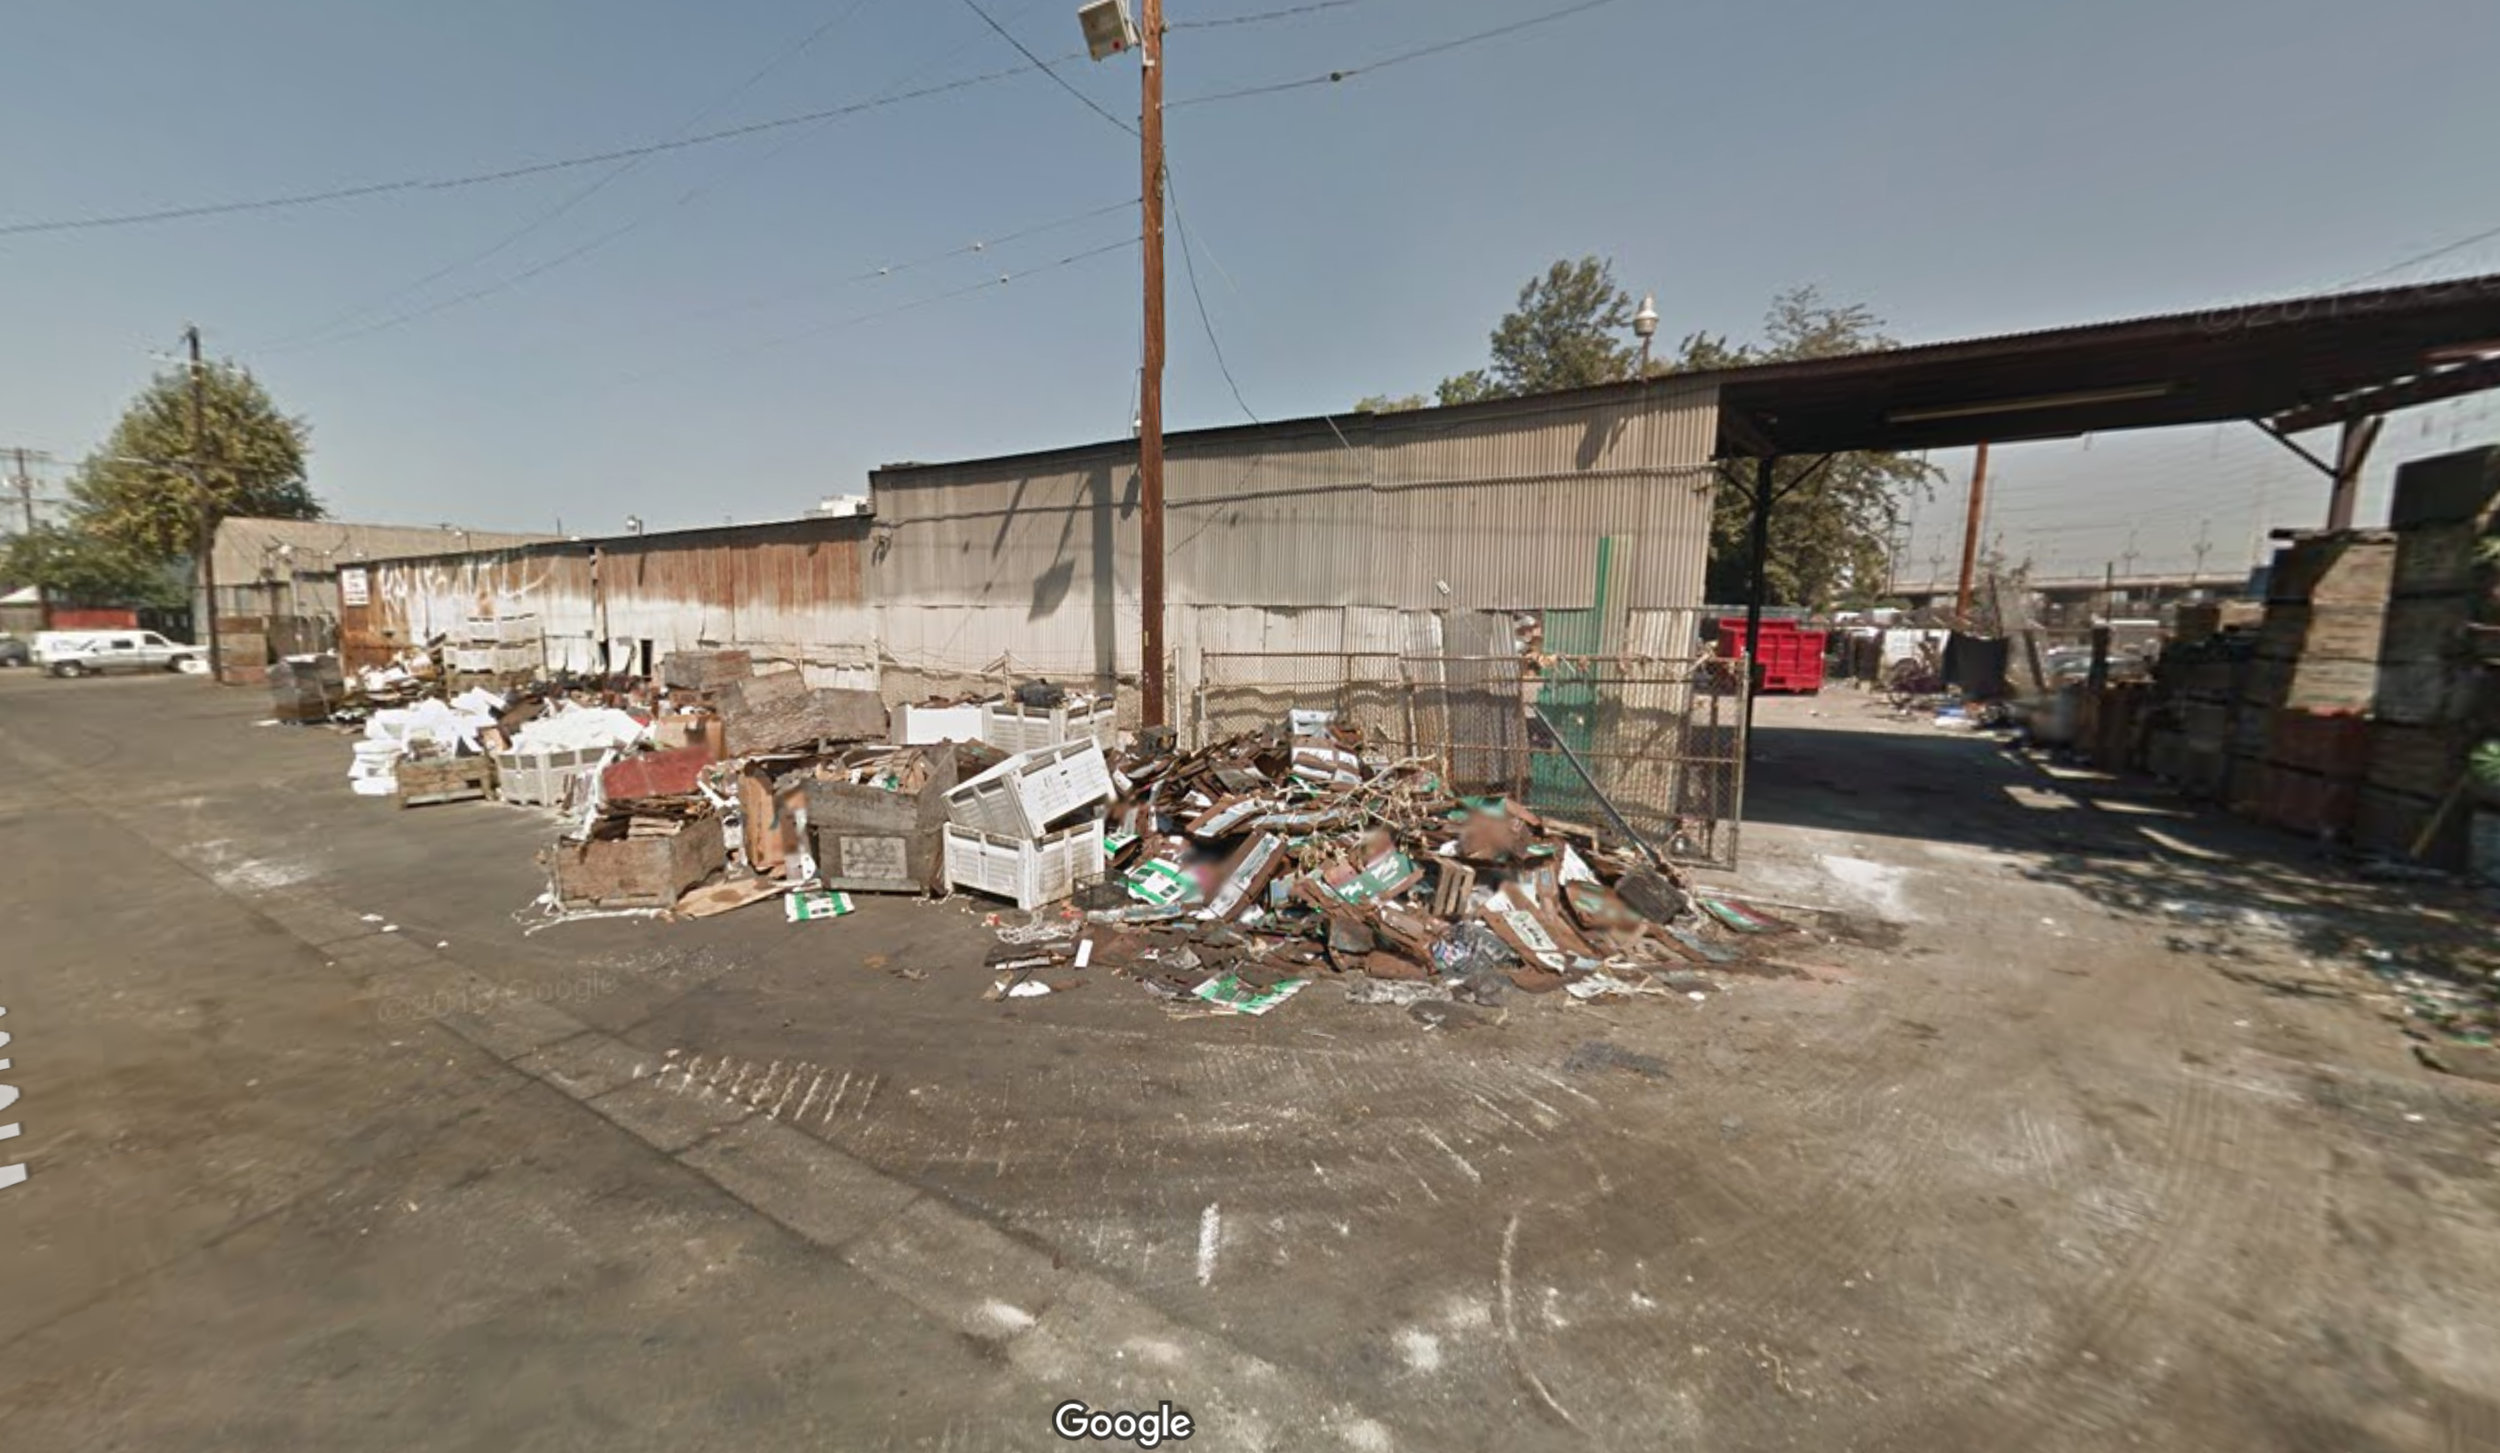 This site in the Arts District requires a general plan amendment to be converted from a literal trash heap into  500 homes, including 76 low-income units . If Measure S passes, it will continue to look like this for at least the next several years.